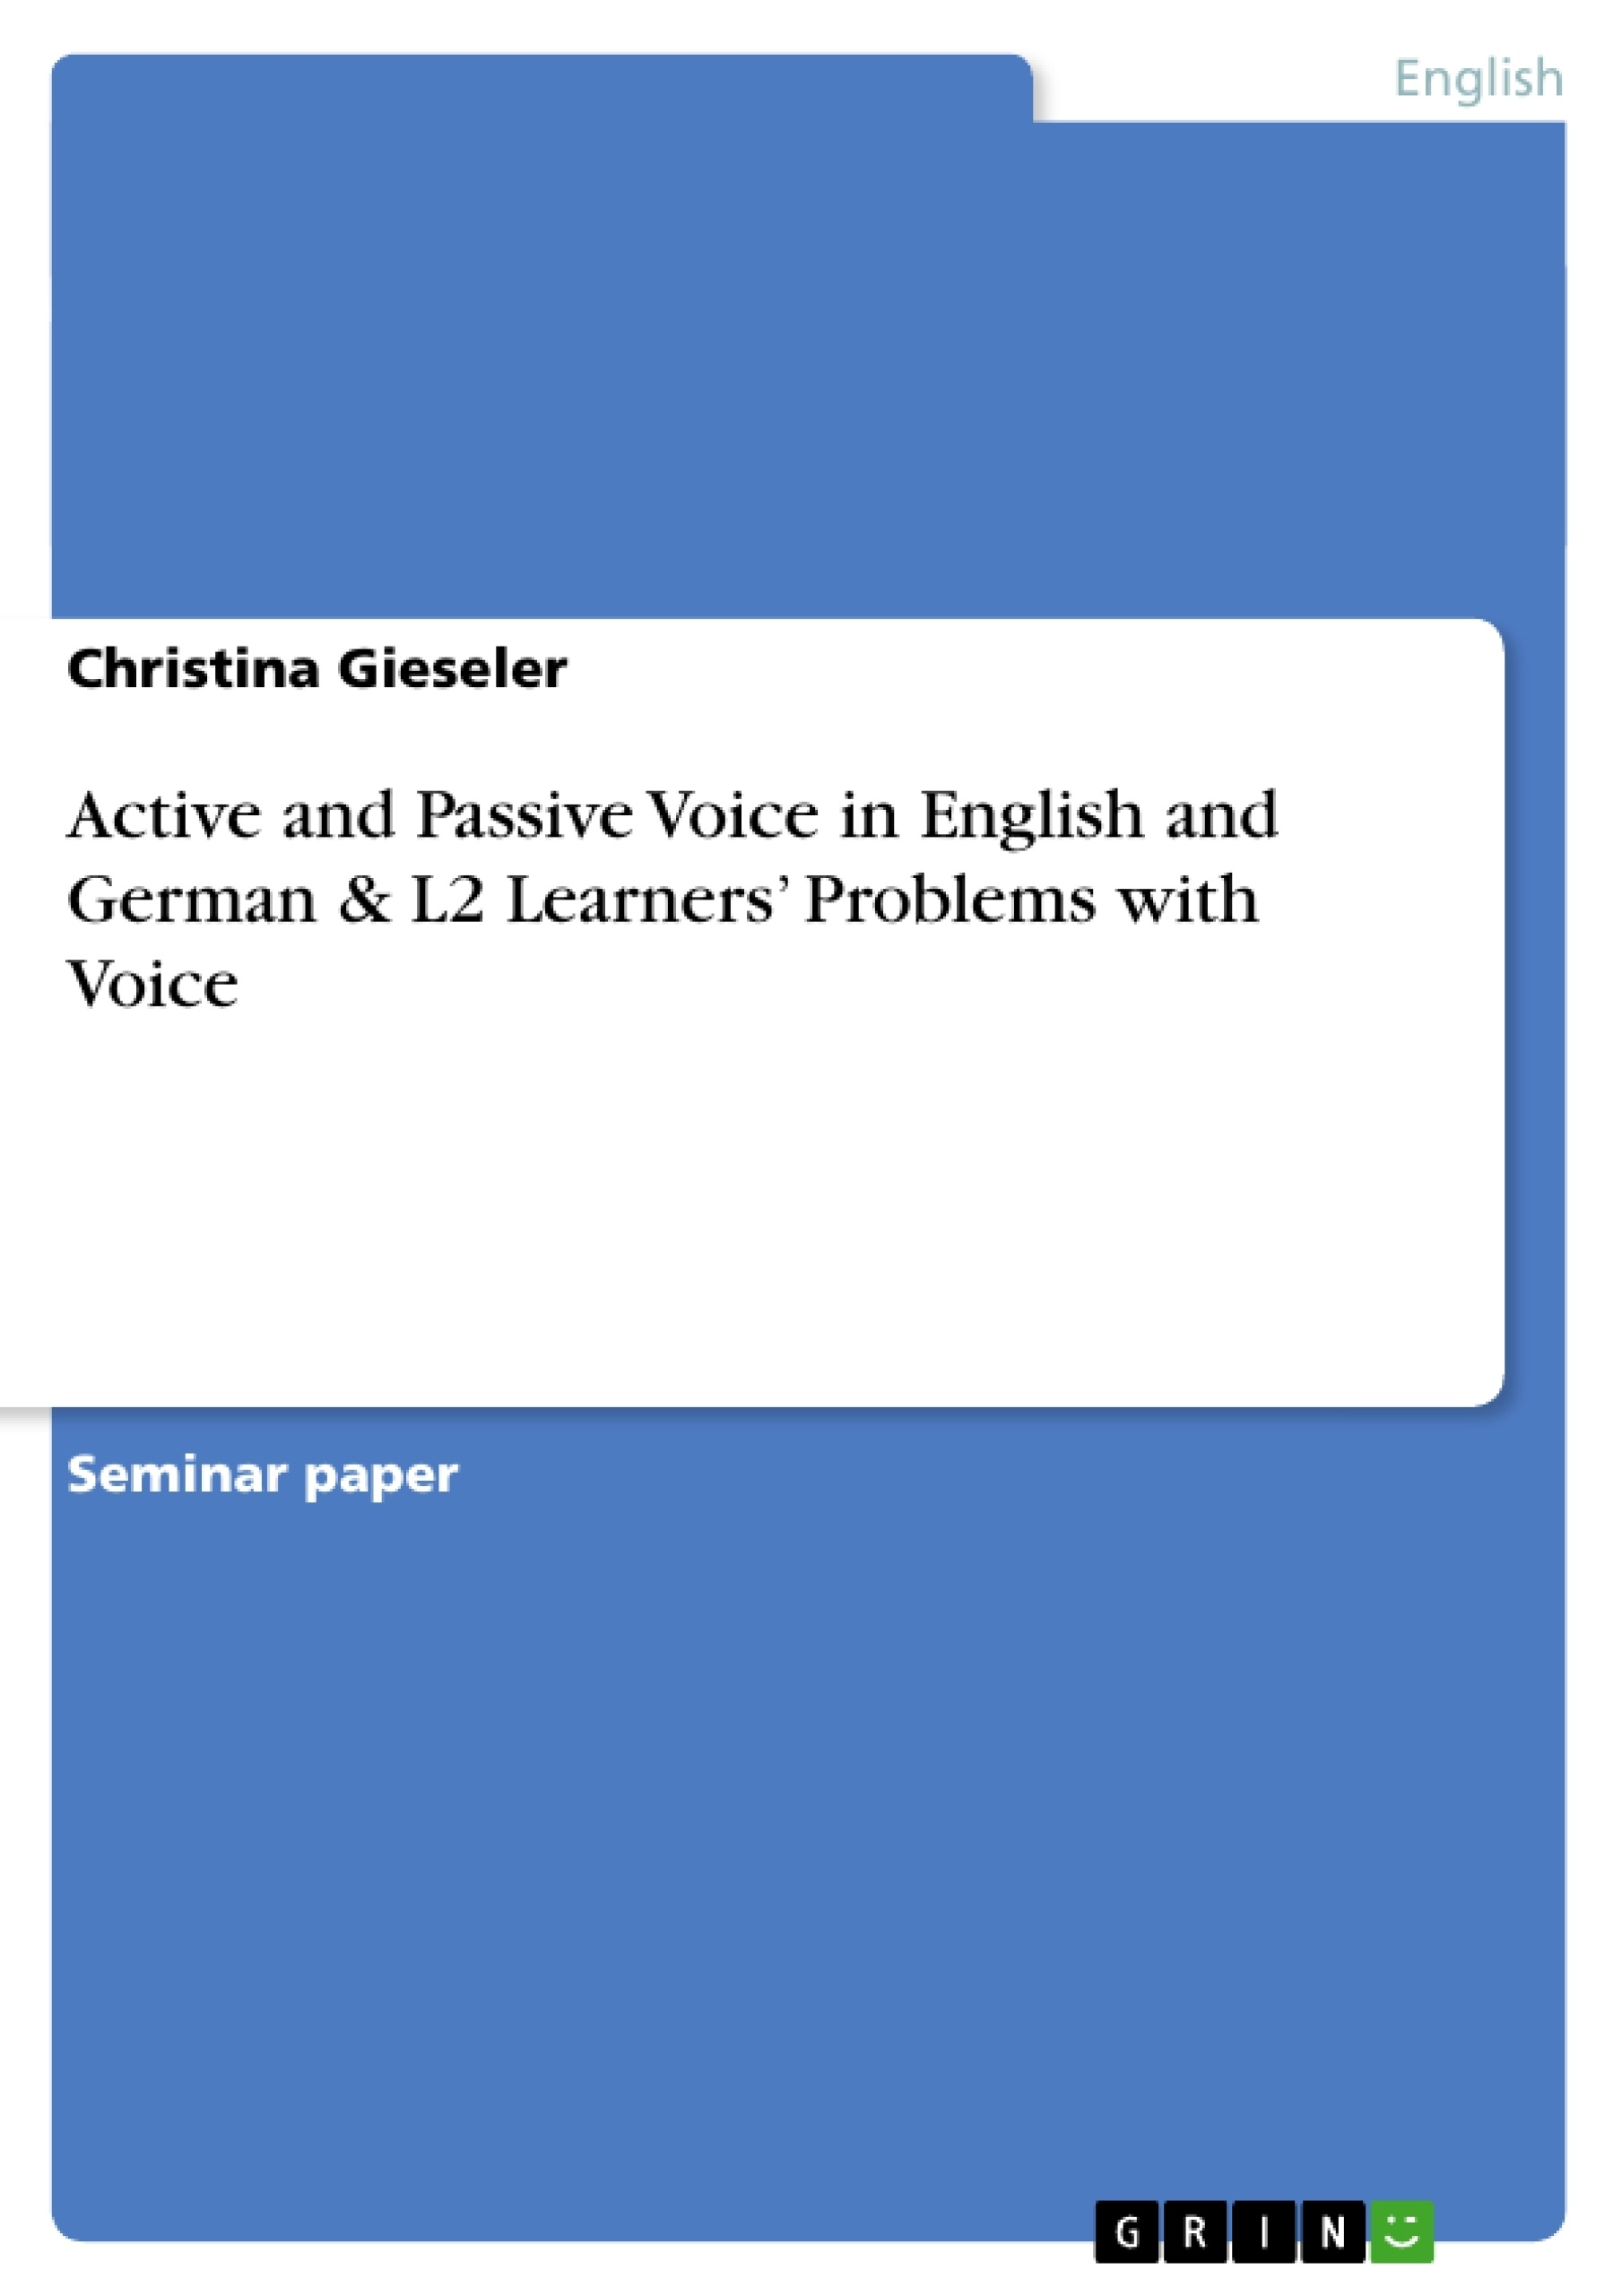 Title: Active and Passive Voice in English and German & L2 Learners' Problems with Voice